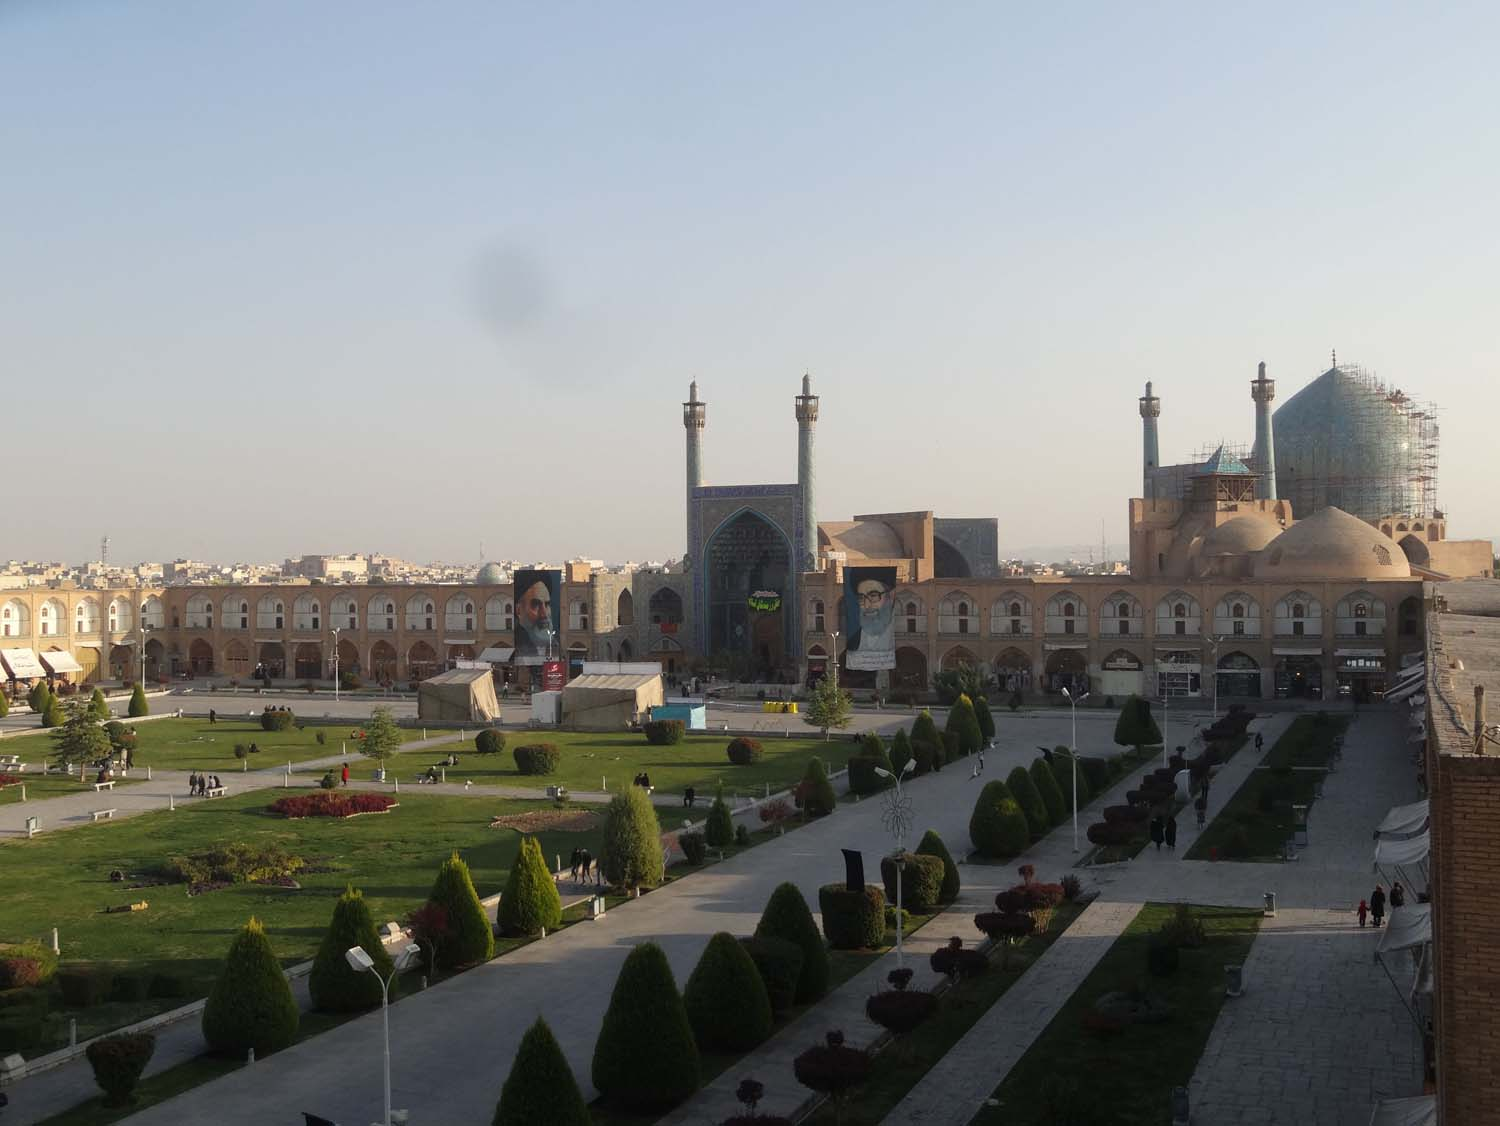 Imam Square - 160 meters wide by 508 meters long!